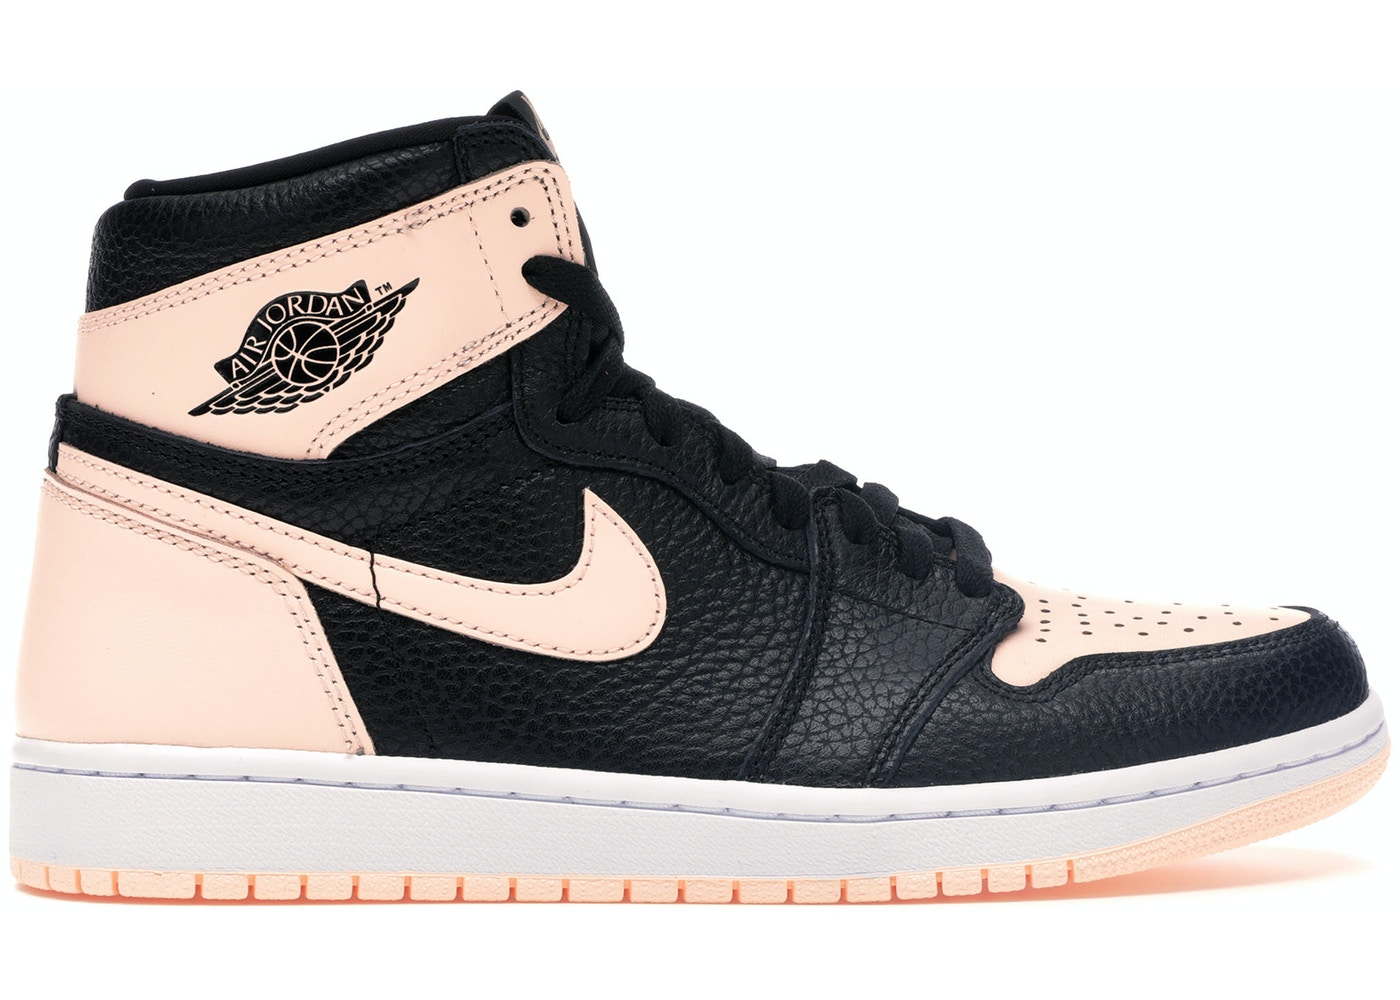 b2999a90896 Jordan 1 Retro High Black Crimson Tint - 555088-081